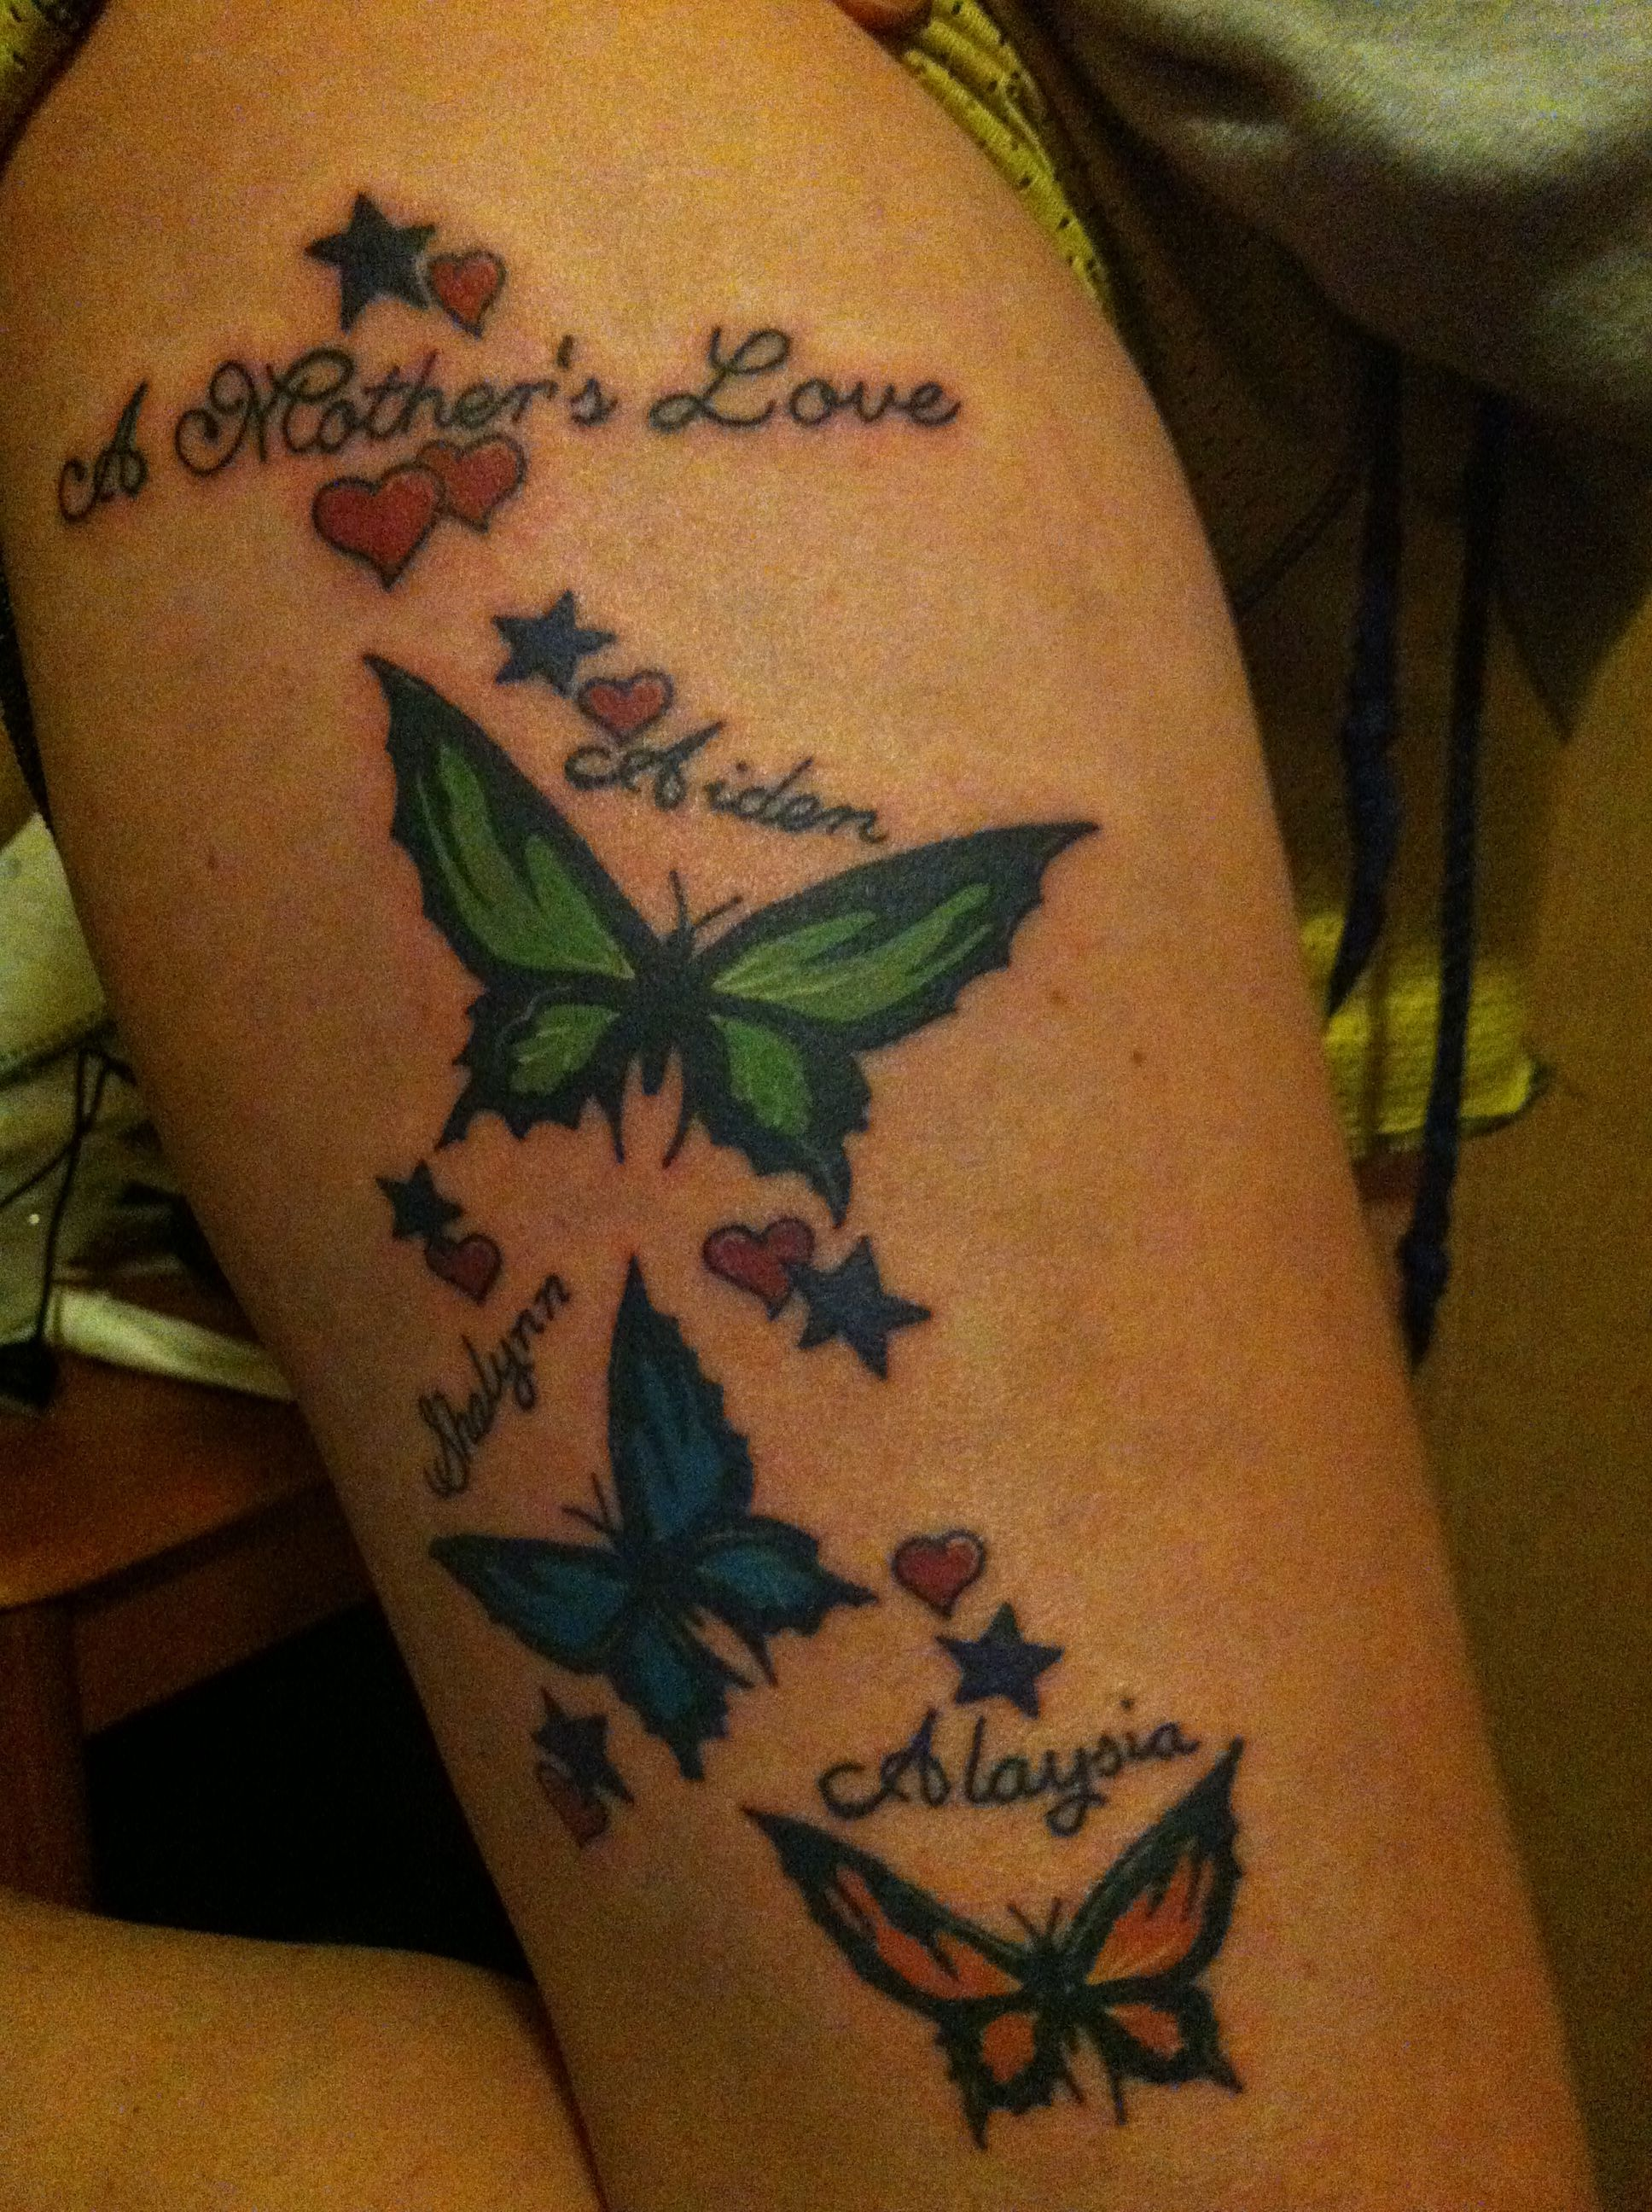 My thigh tat I just got on 2/2/13. All 3 my kids names in order they were born w... -  My thigh tat I just got on 2/2/13. All 3 my kids names in order they were born with their own color - #born #childrensnamestattooideas #daughtersnametattoo #Kids #Names #ORDER #tat #thigh